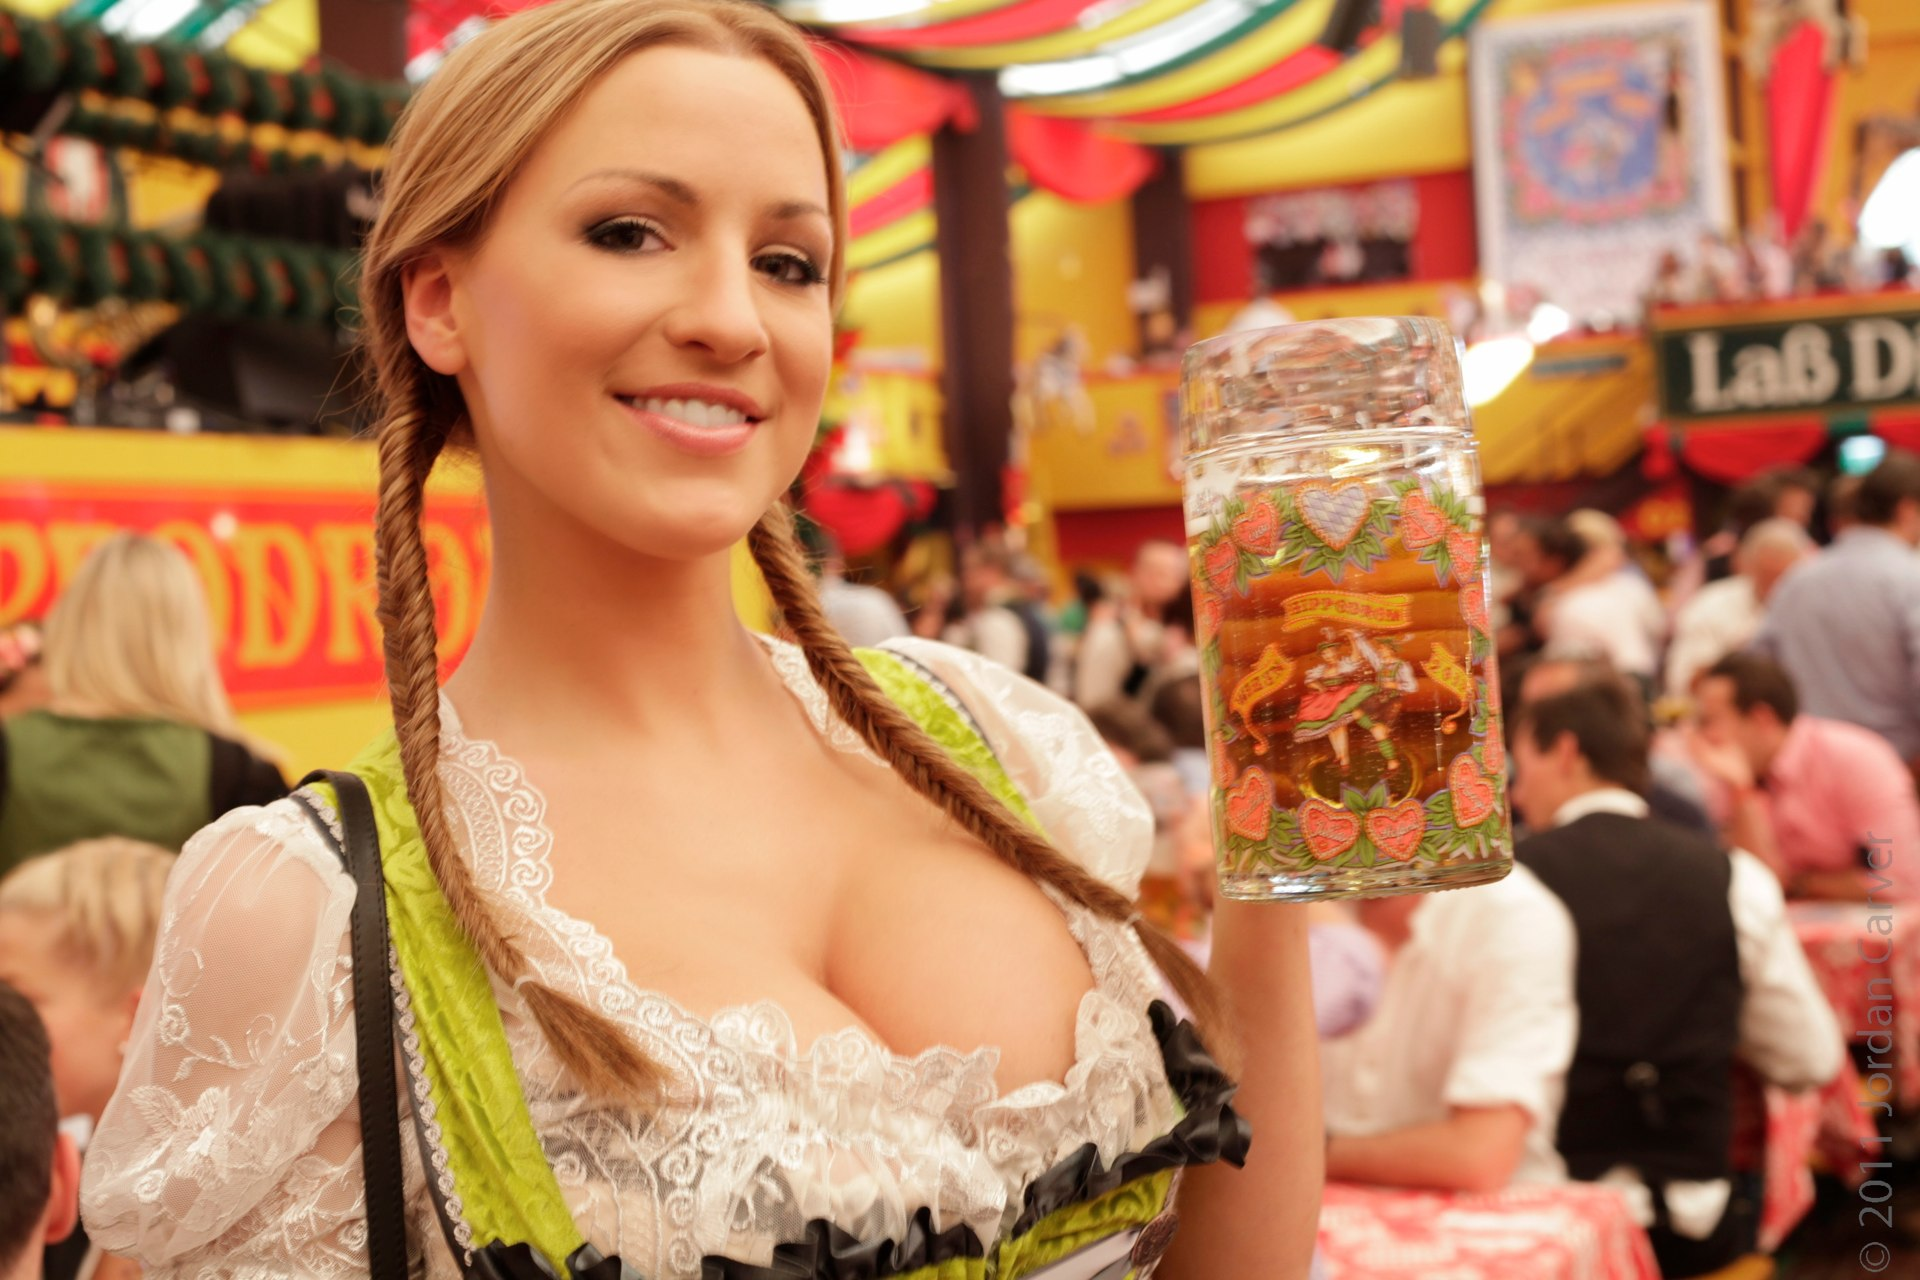 Grab A Beer With Your Buddy And Head To Oktoberfest